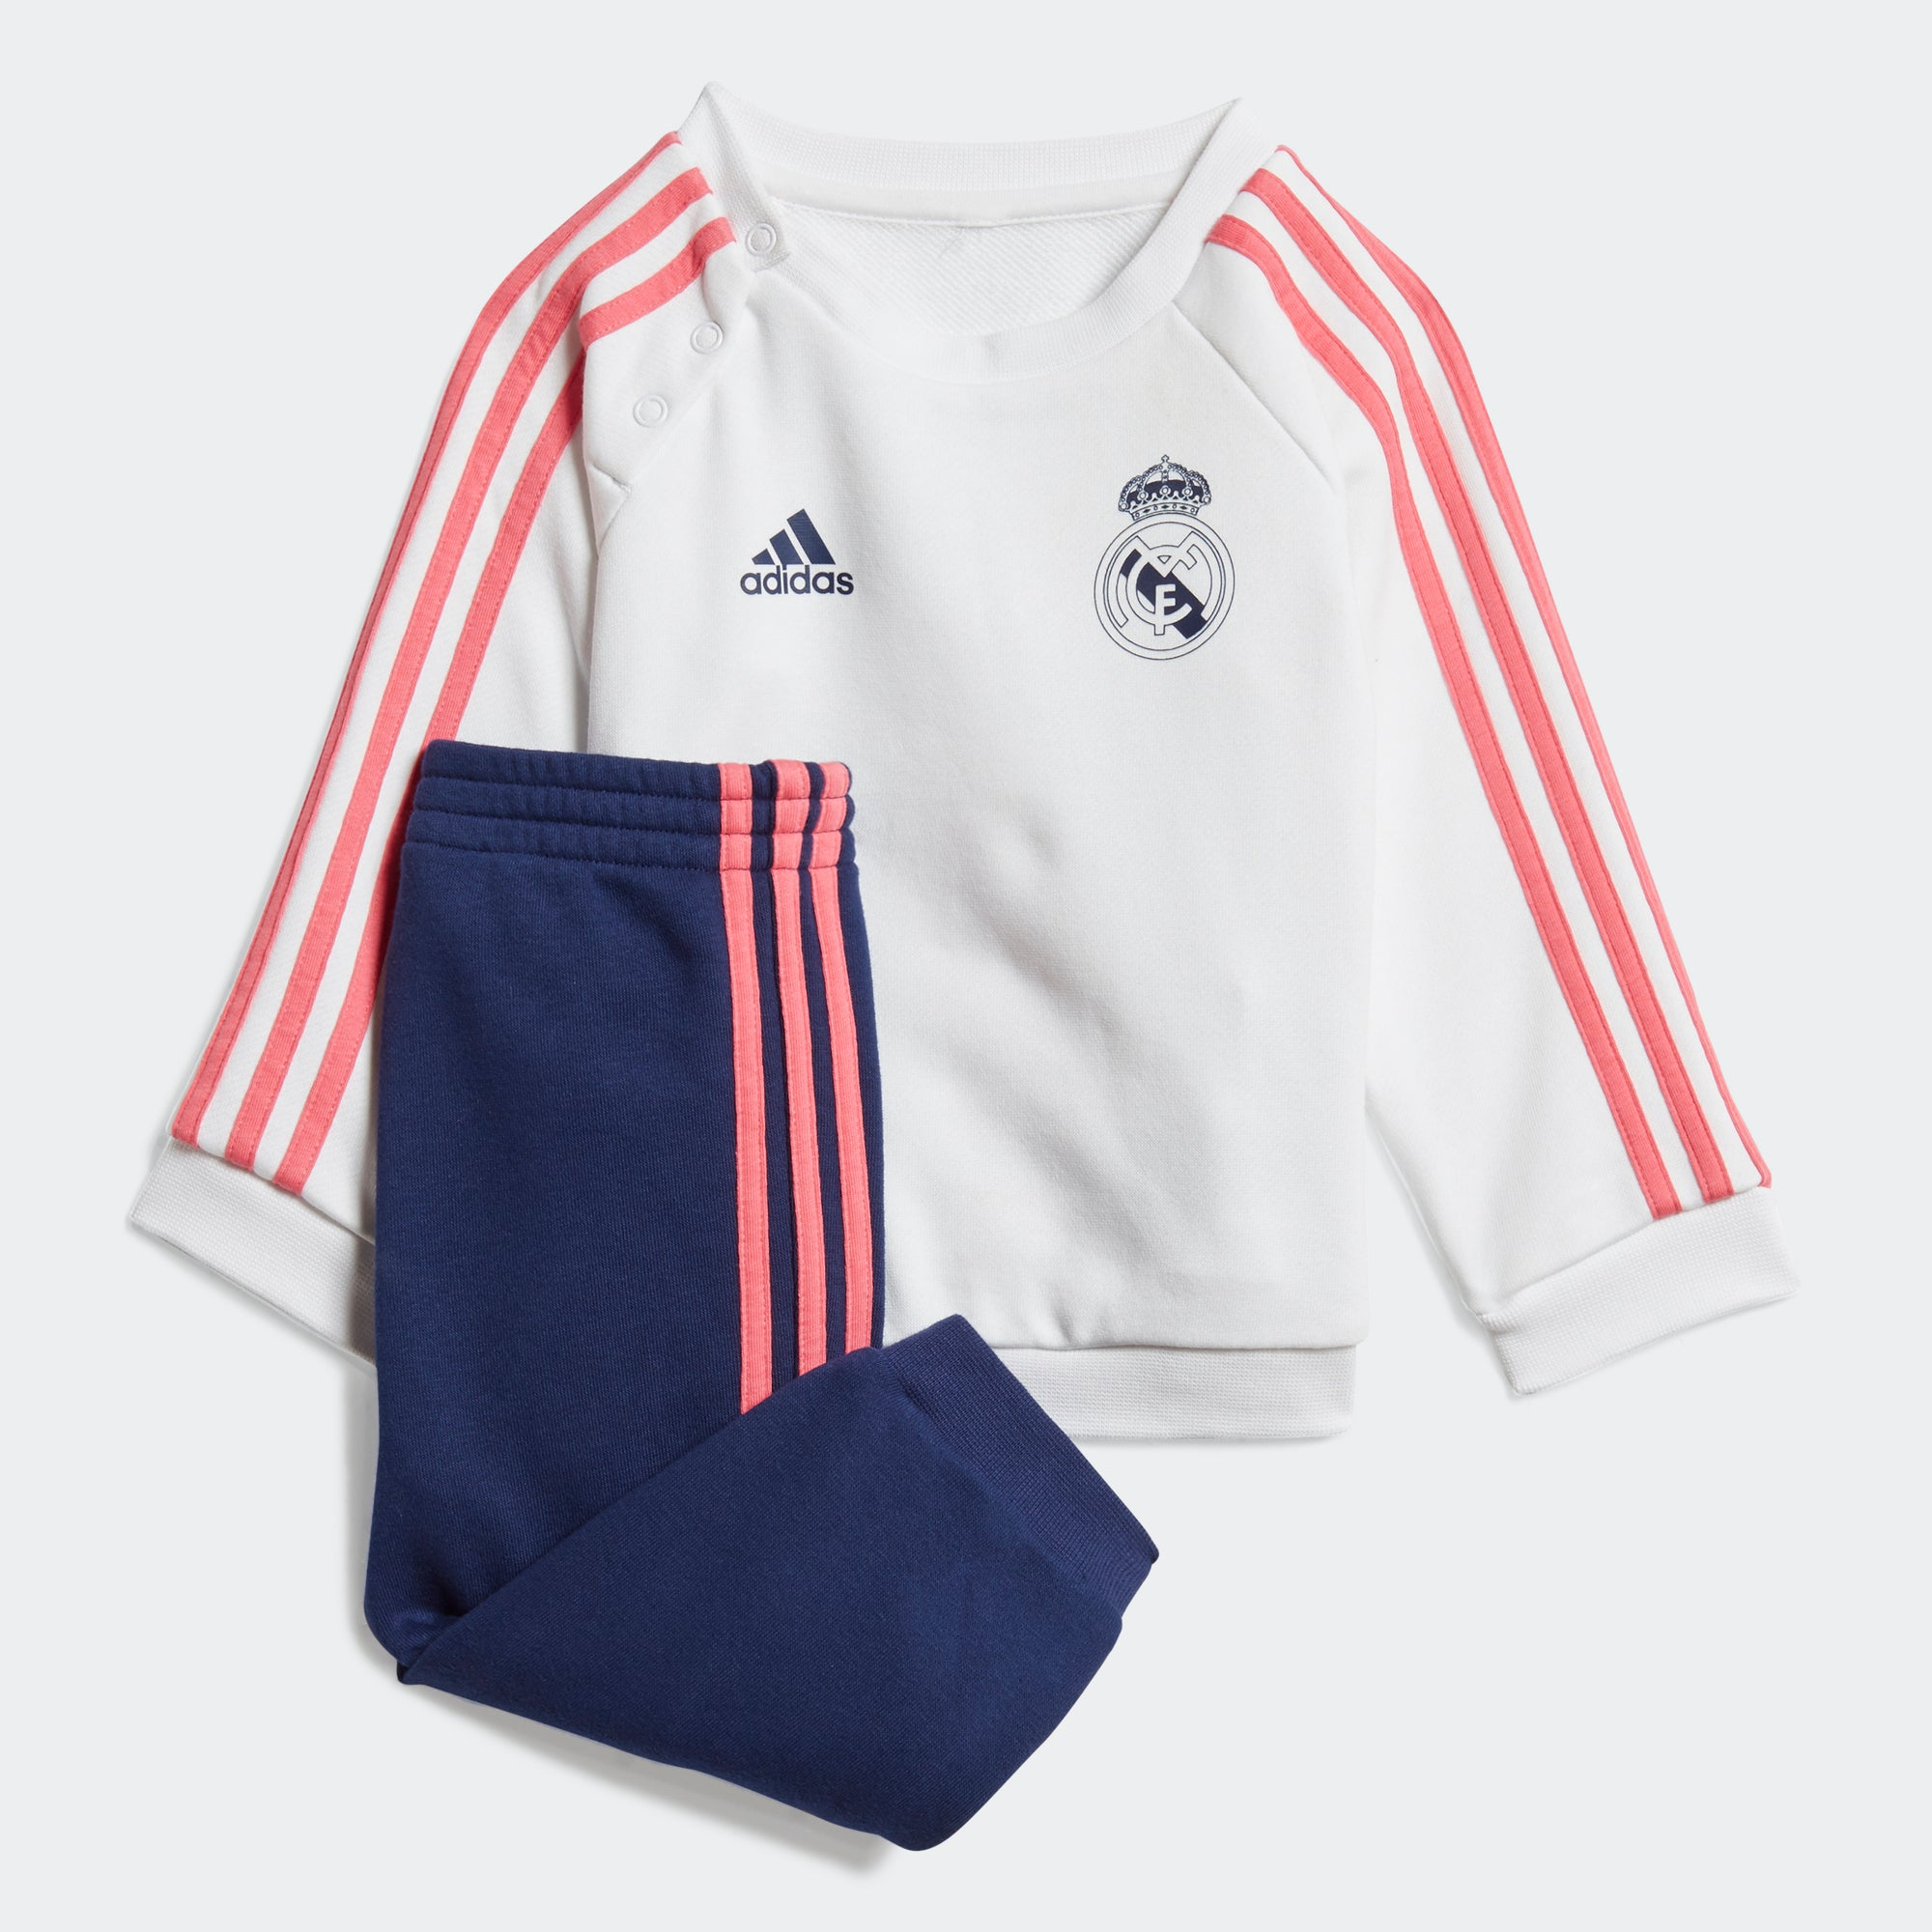 Real Madrid 3-Stripe Baby Jogger Youth